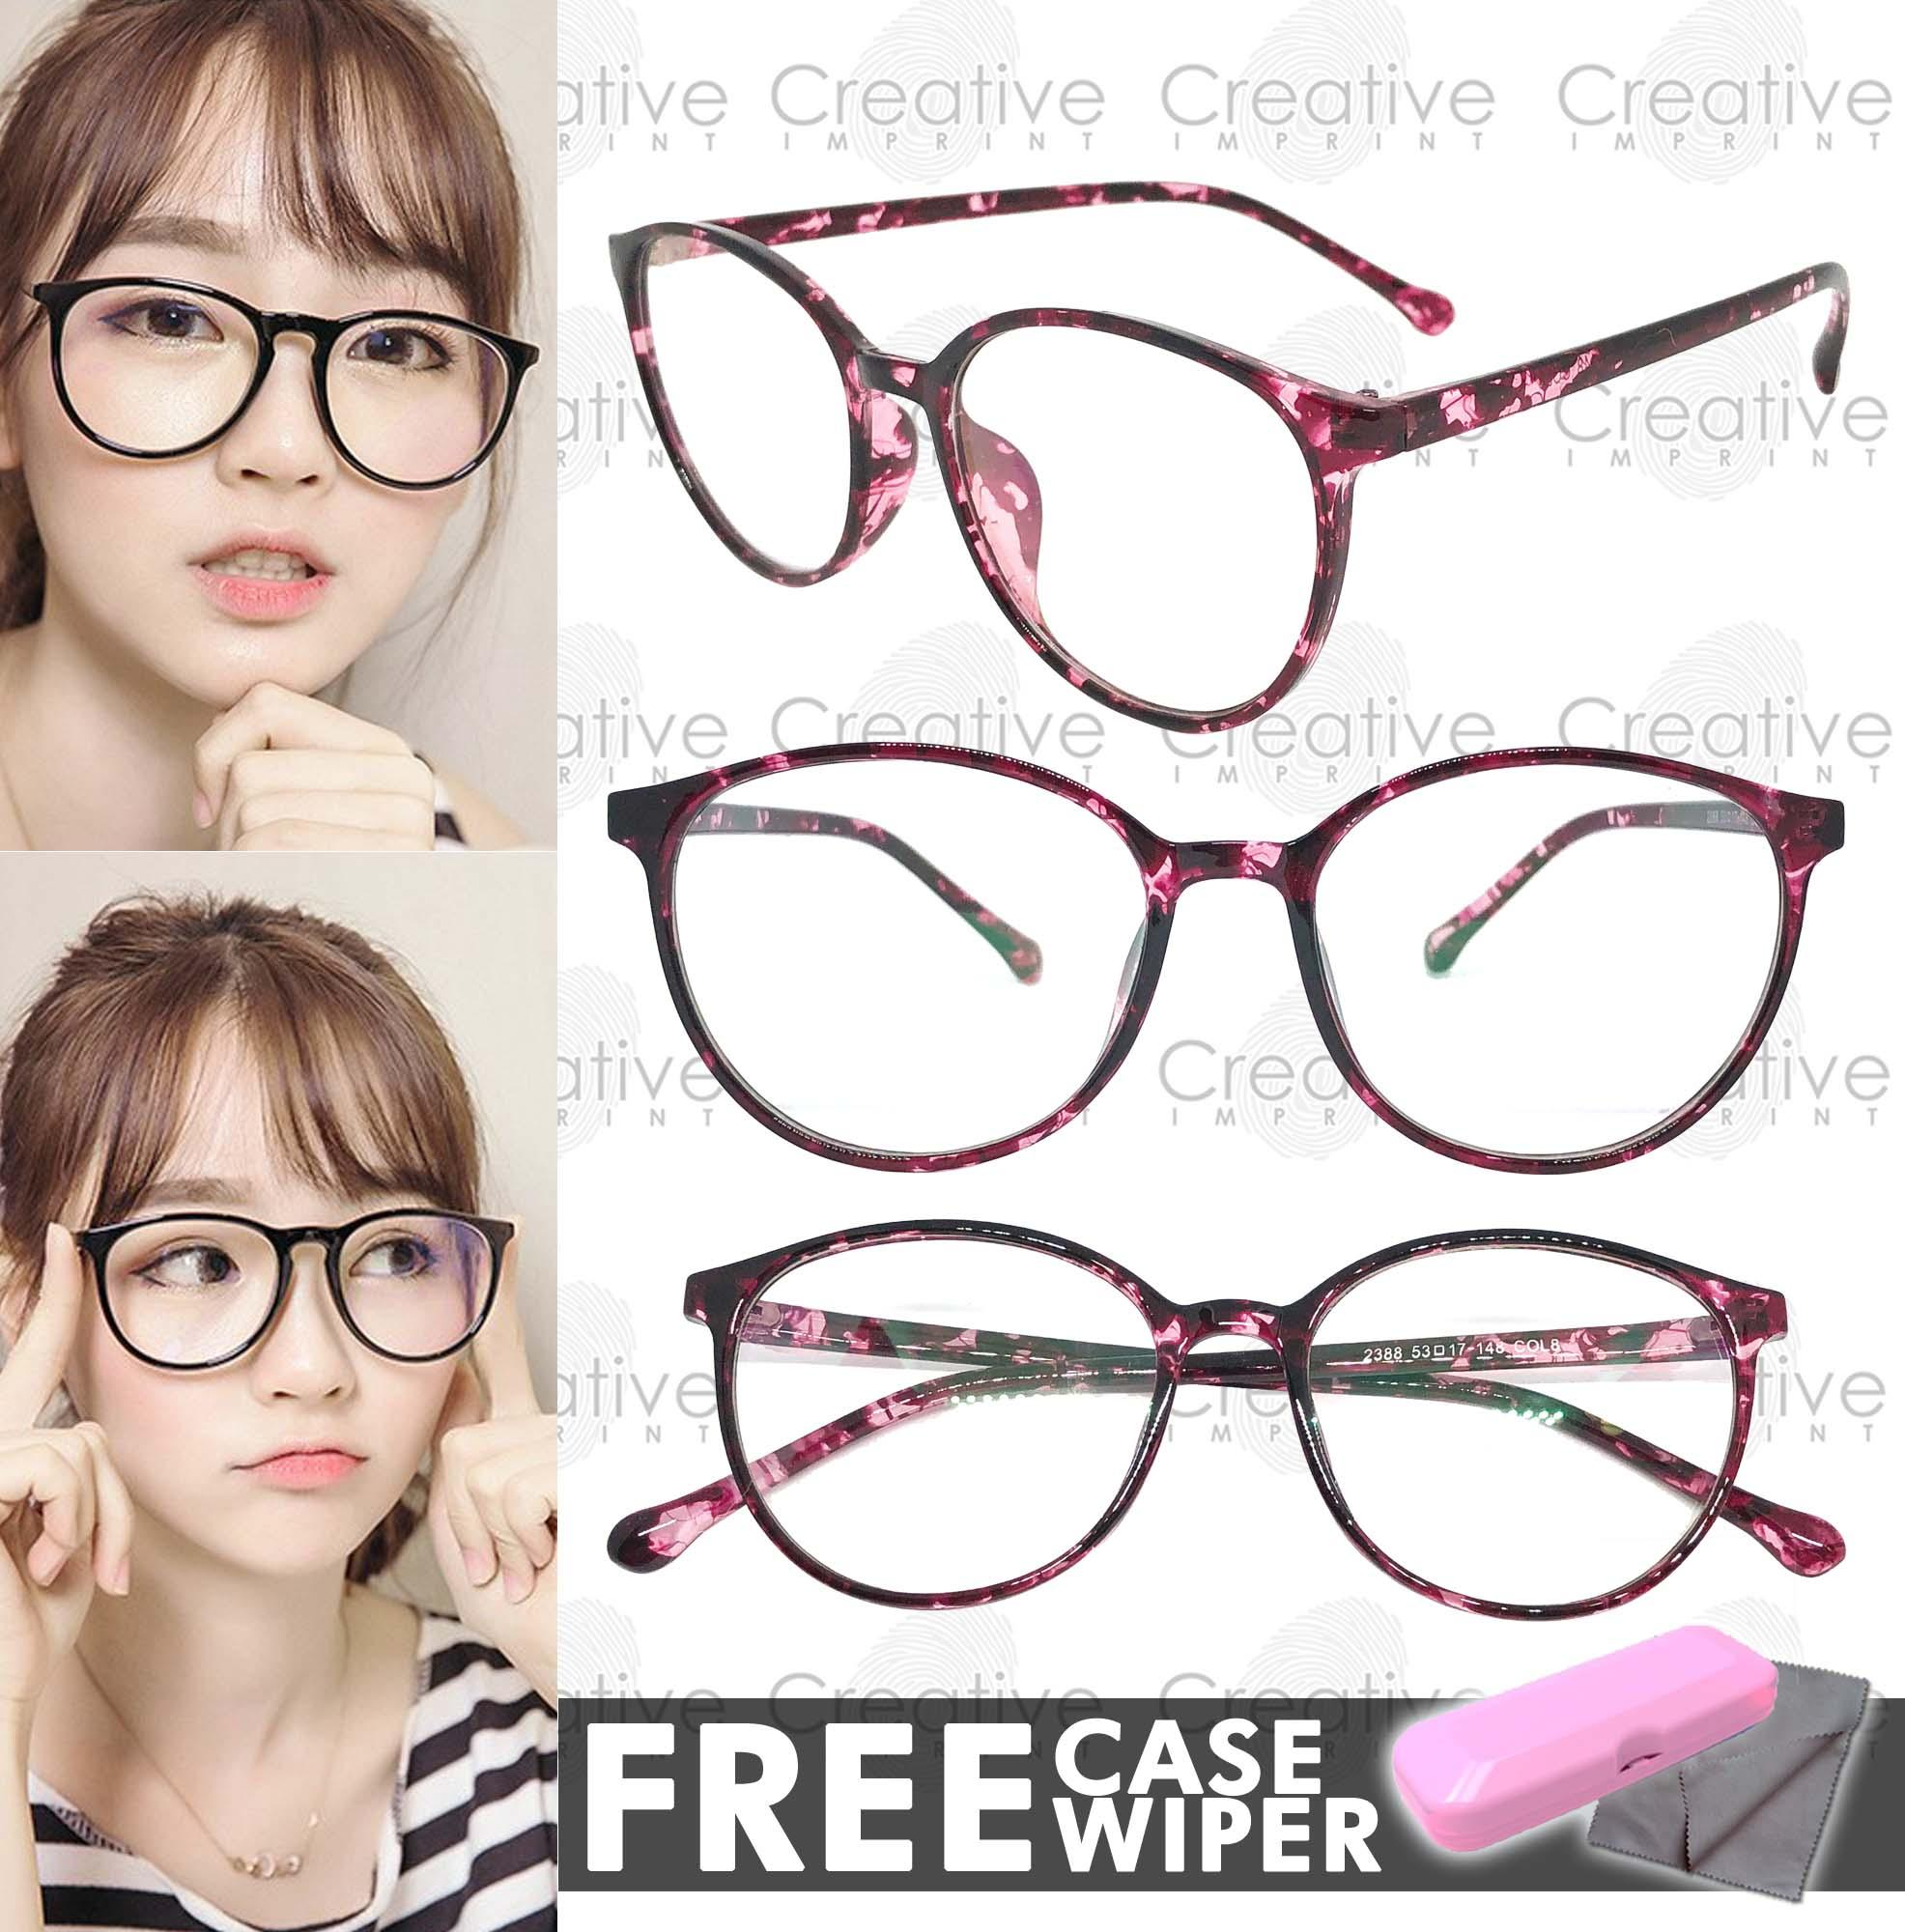 58f5cb9d225 Creative Imprint Eyeglasses Anti-Radiation Lens ( 05 Animal Print Purple)  Anti-